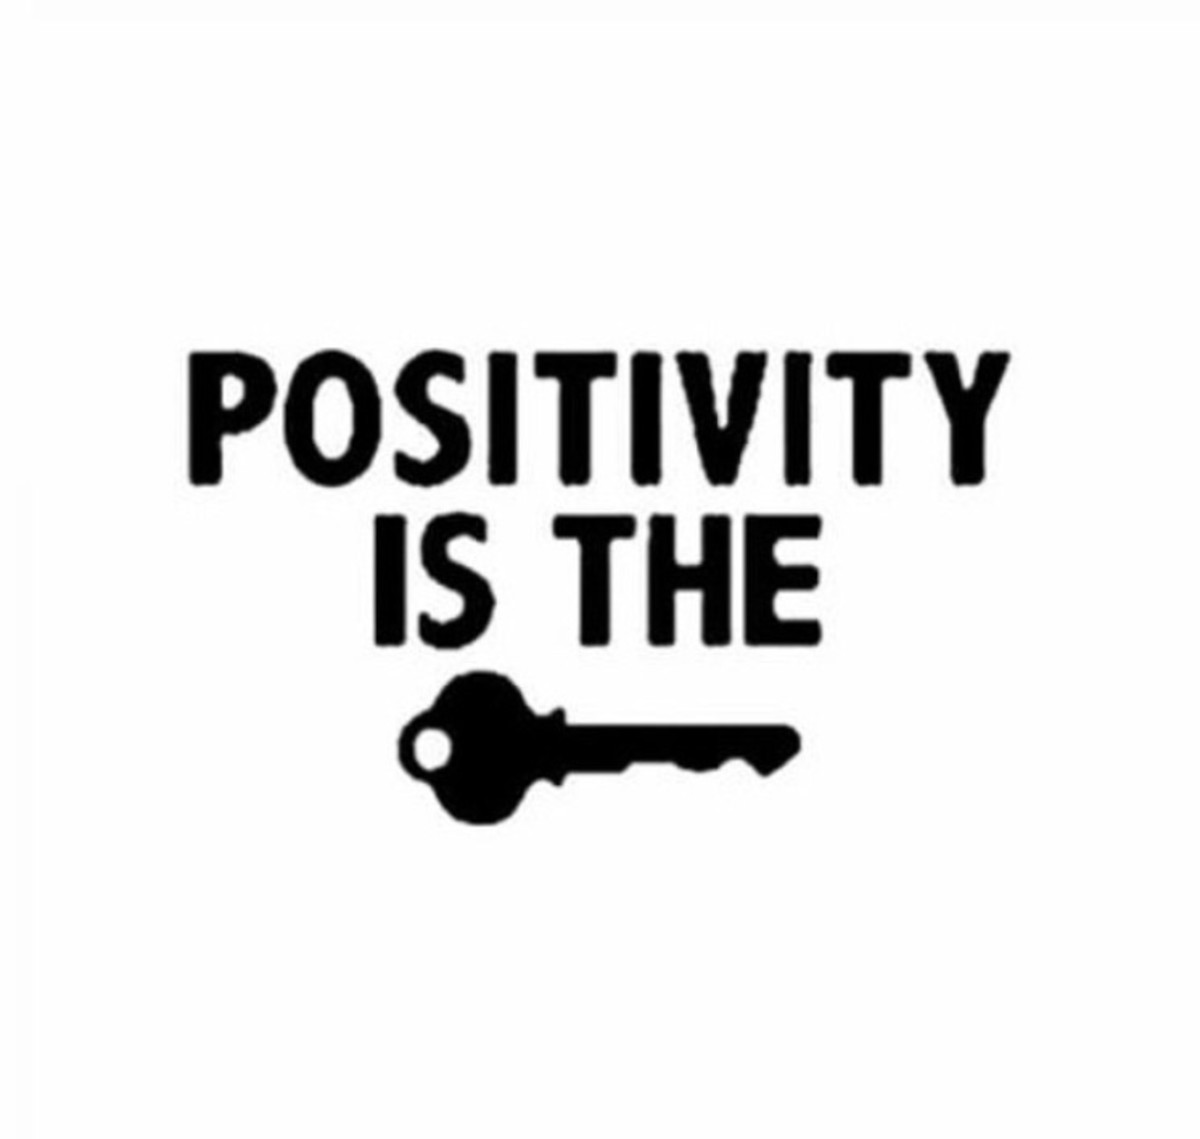 quotes-about-being-positive